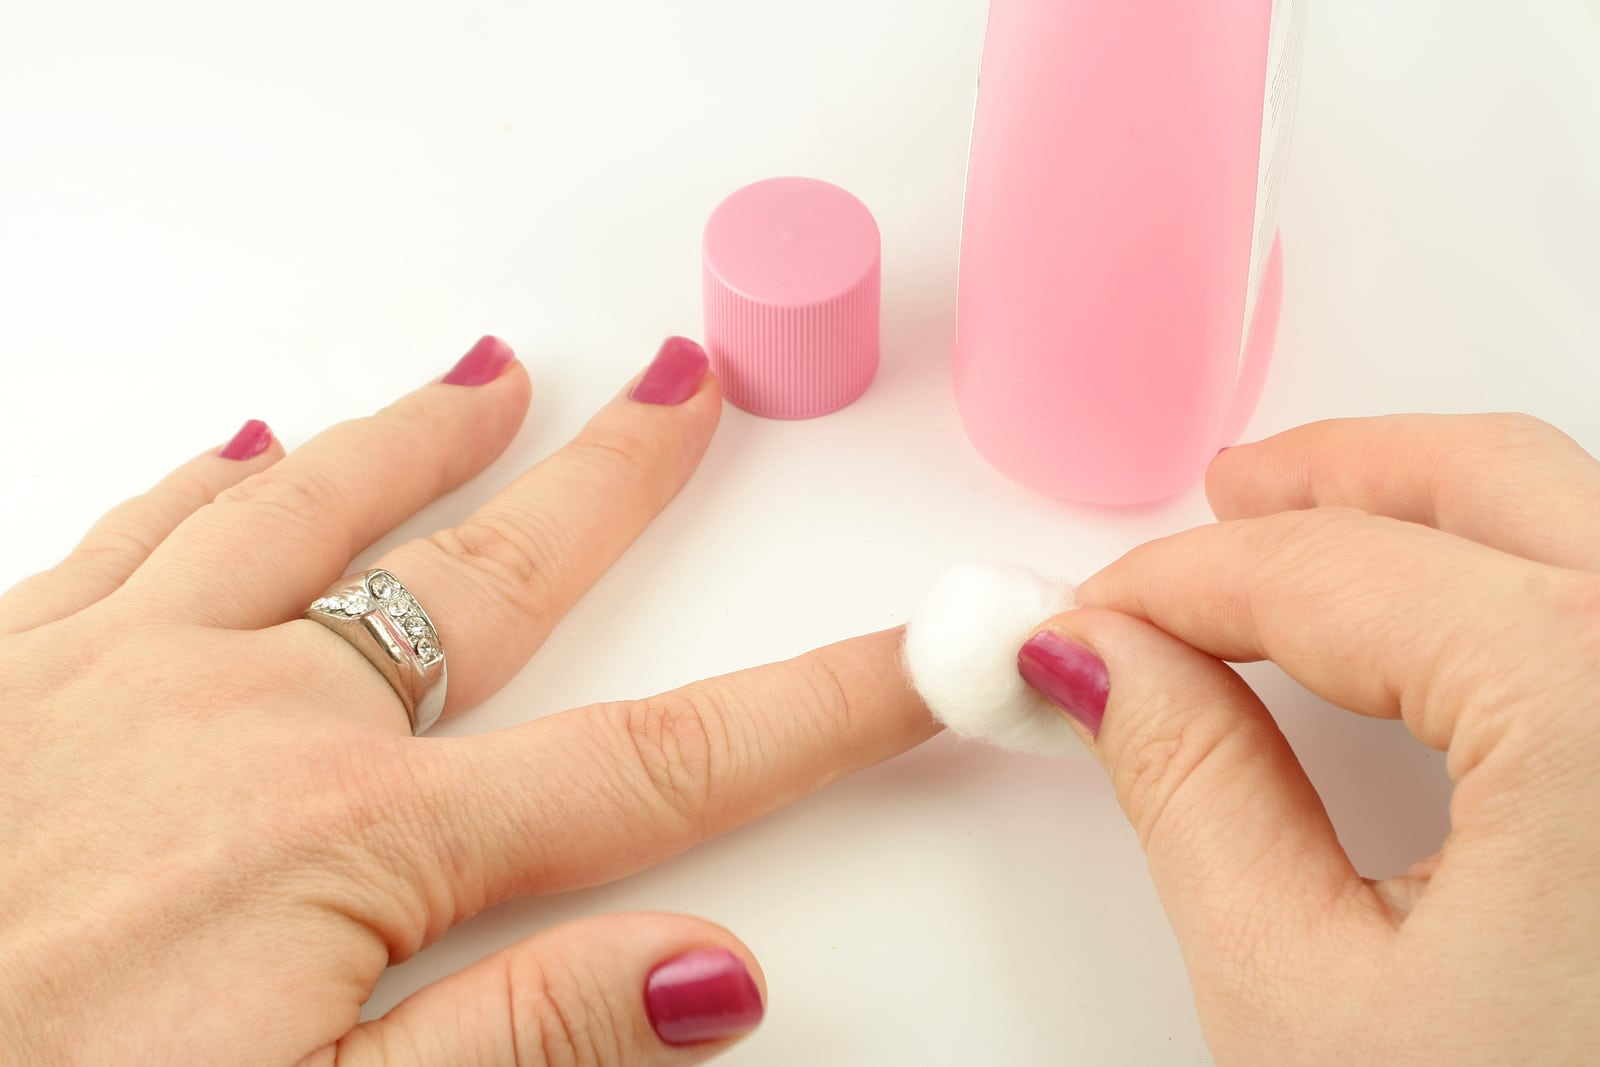 How To Completely Remove Nailpolish Color From Your Nails